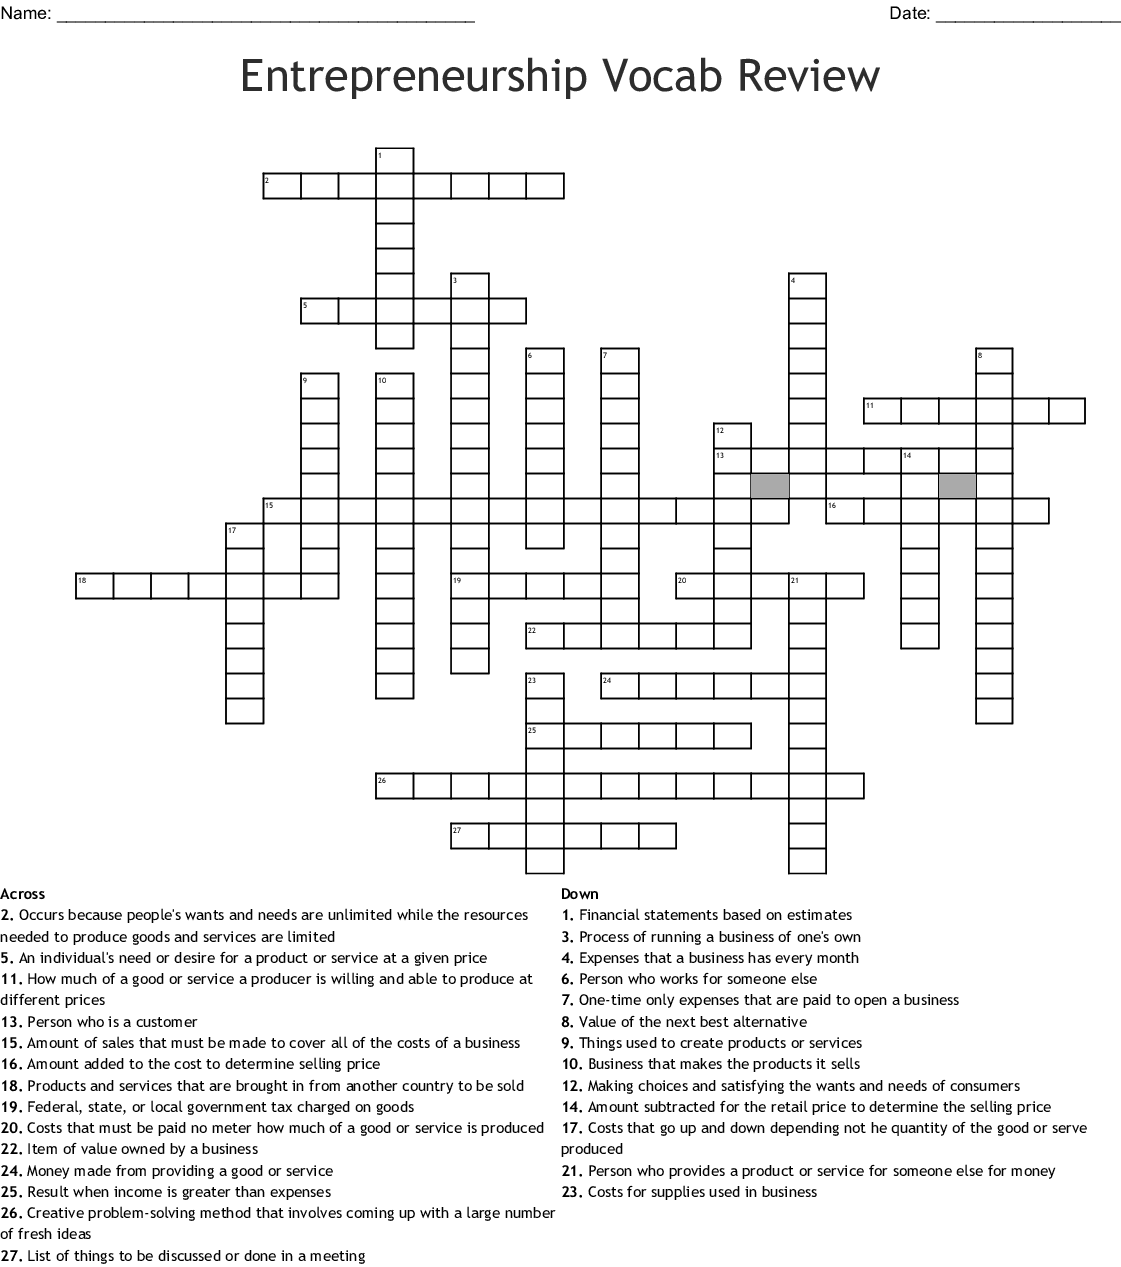 Entrepreneur Crossword Wordmint